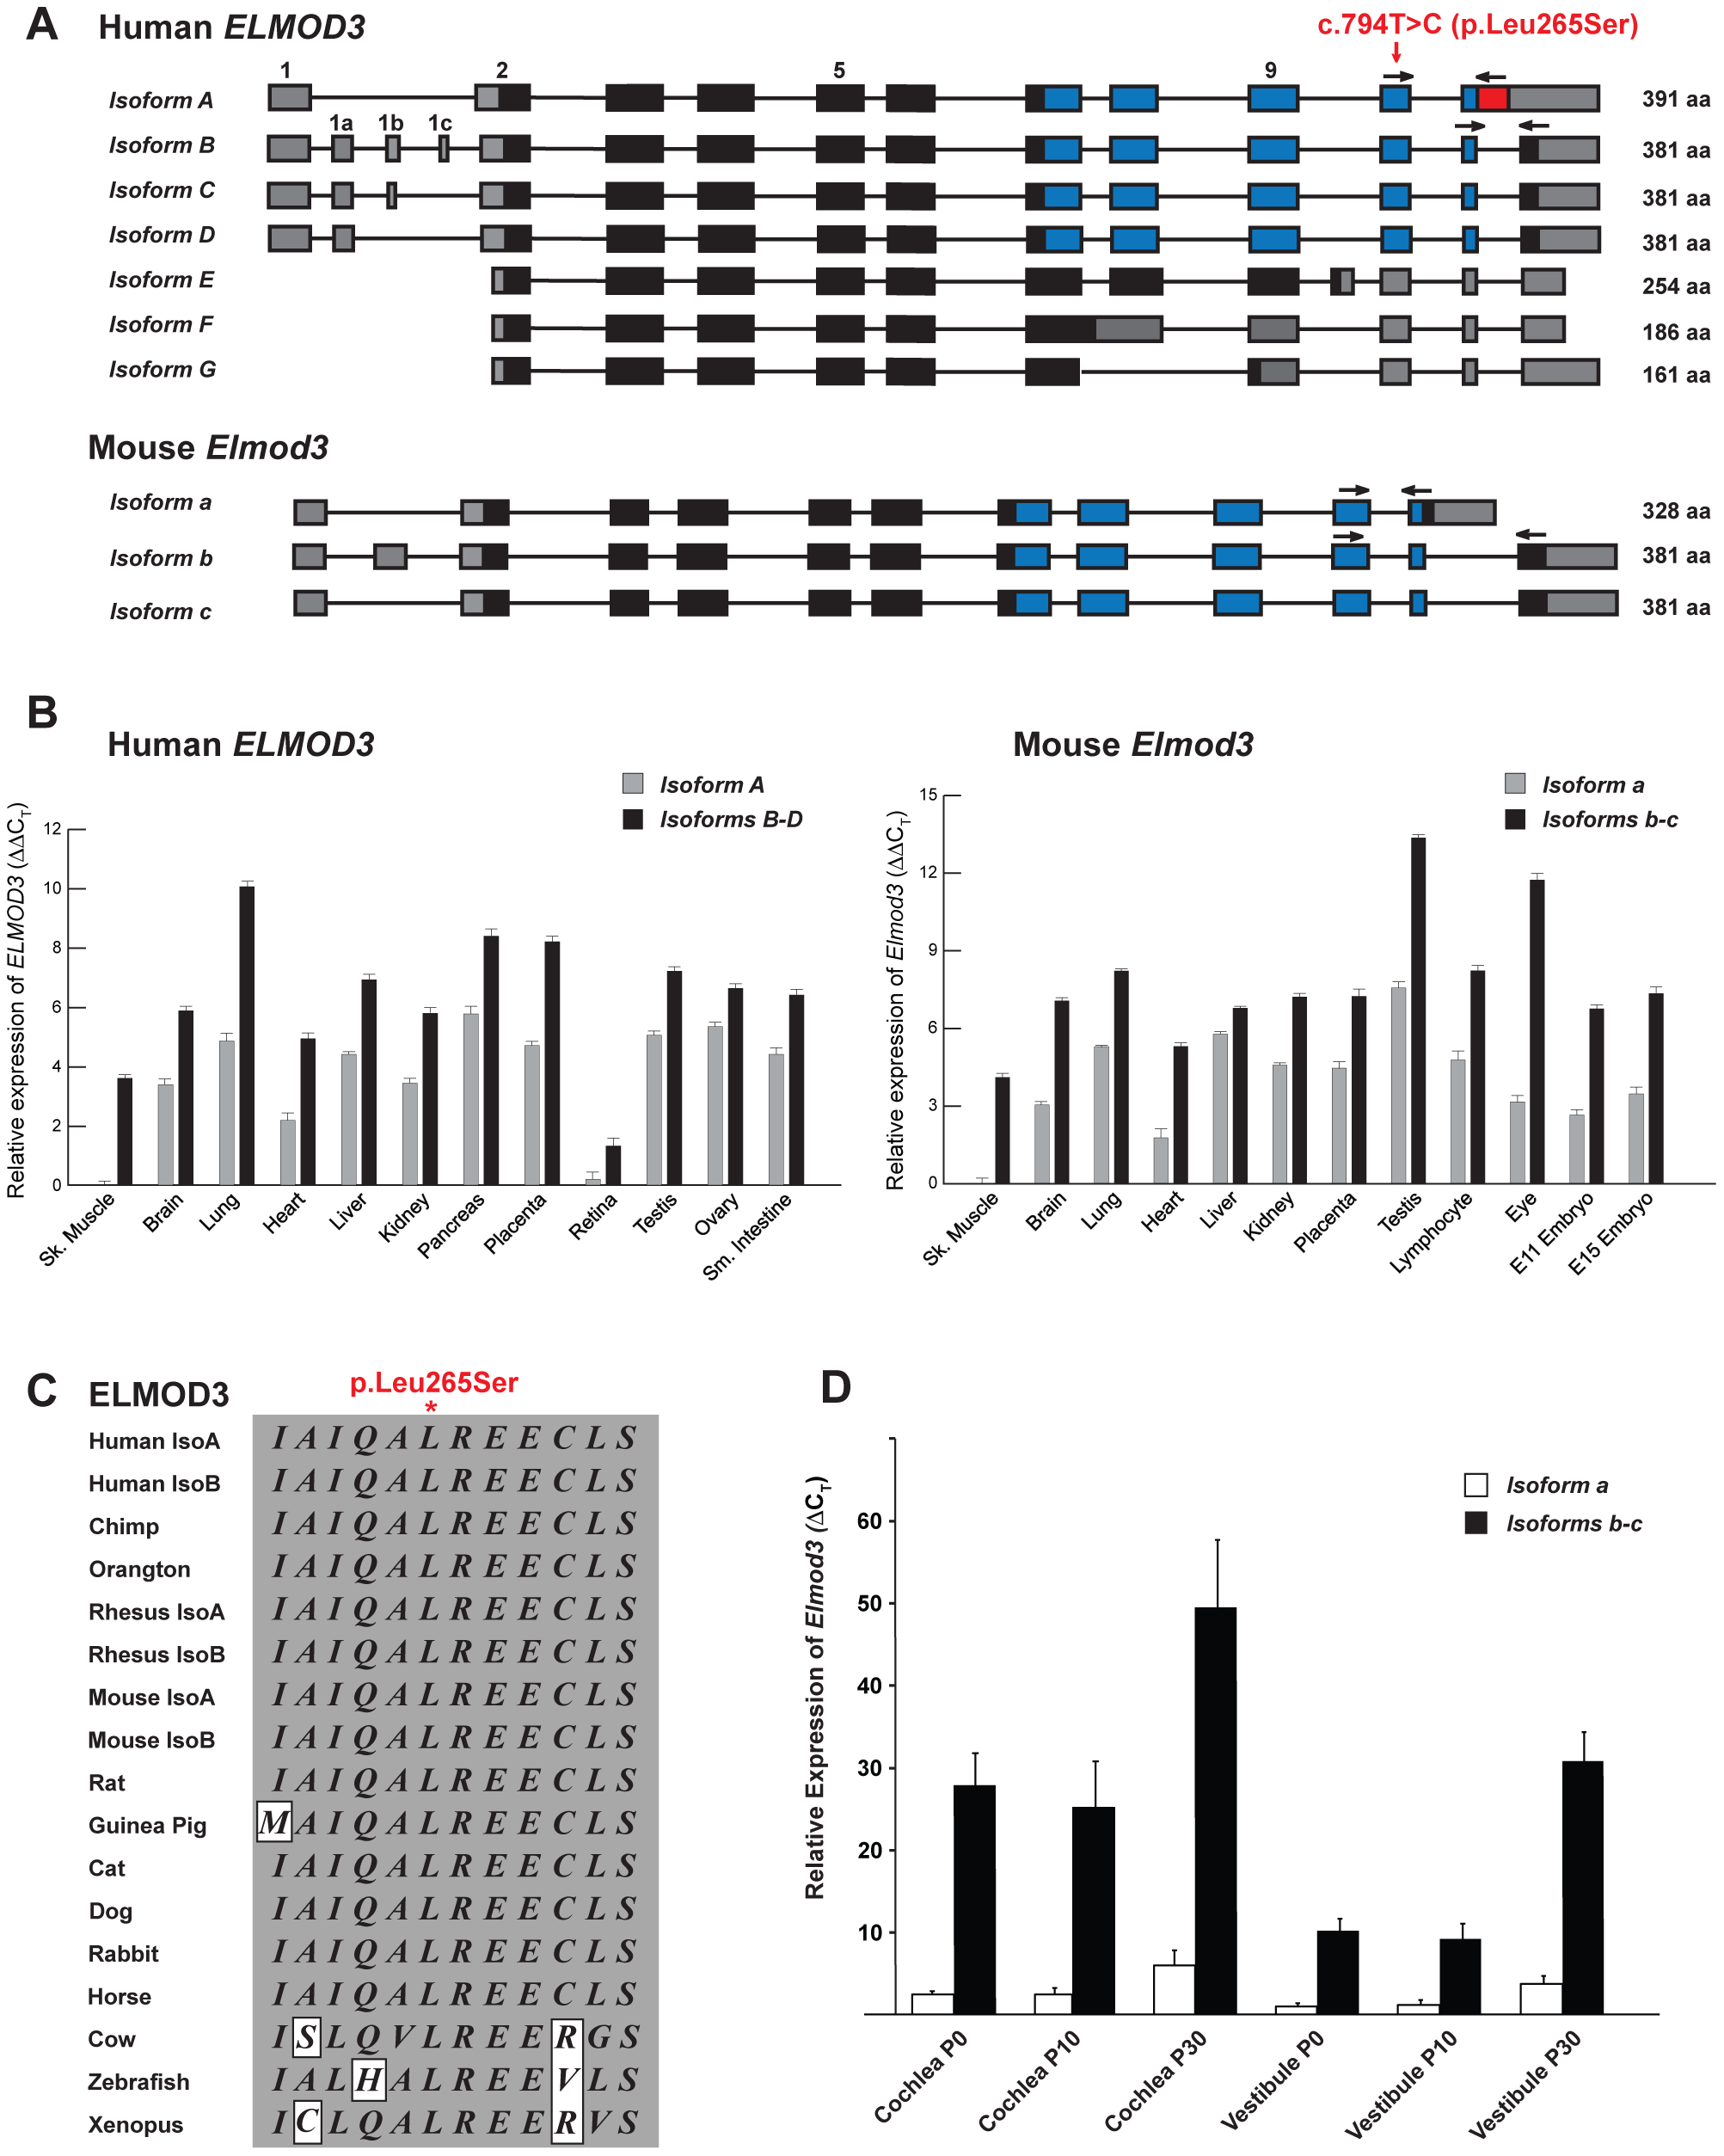 The transcripts and expression profiles of the genes that encode ELMOD3 in humans and mice.